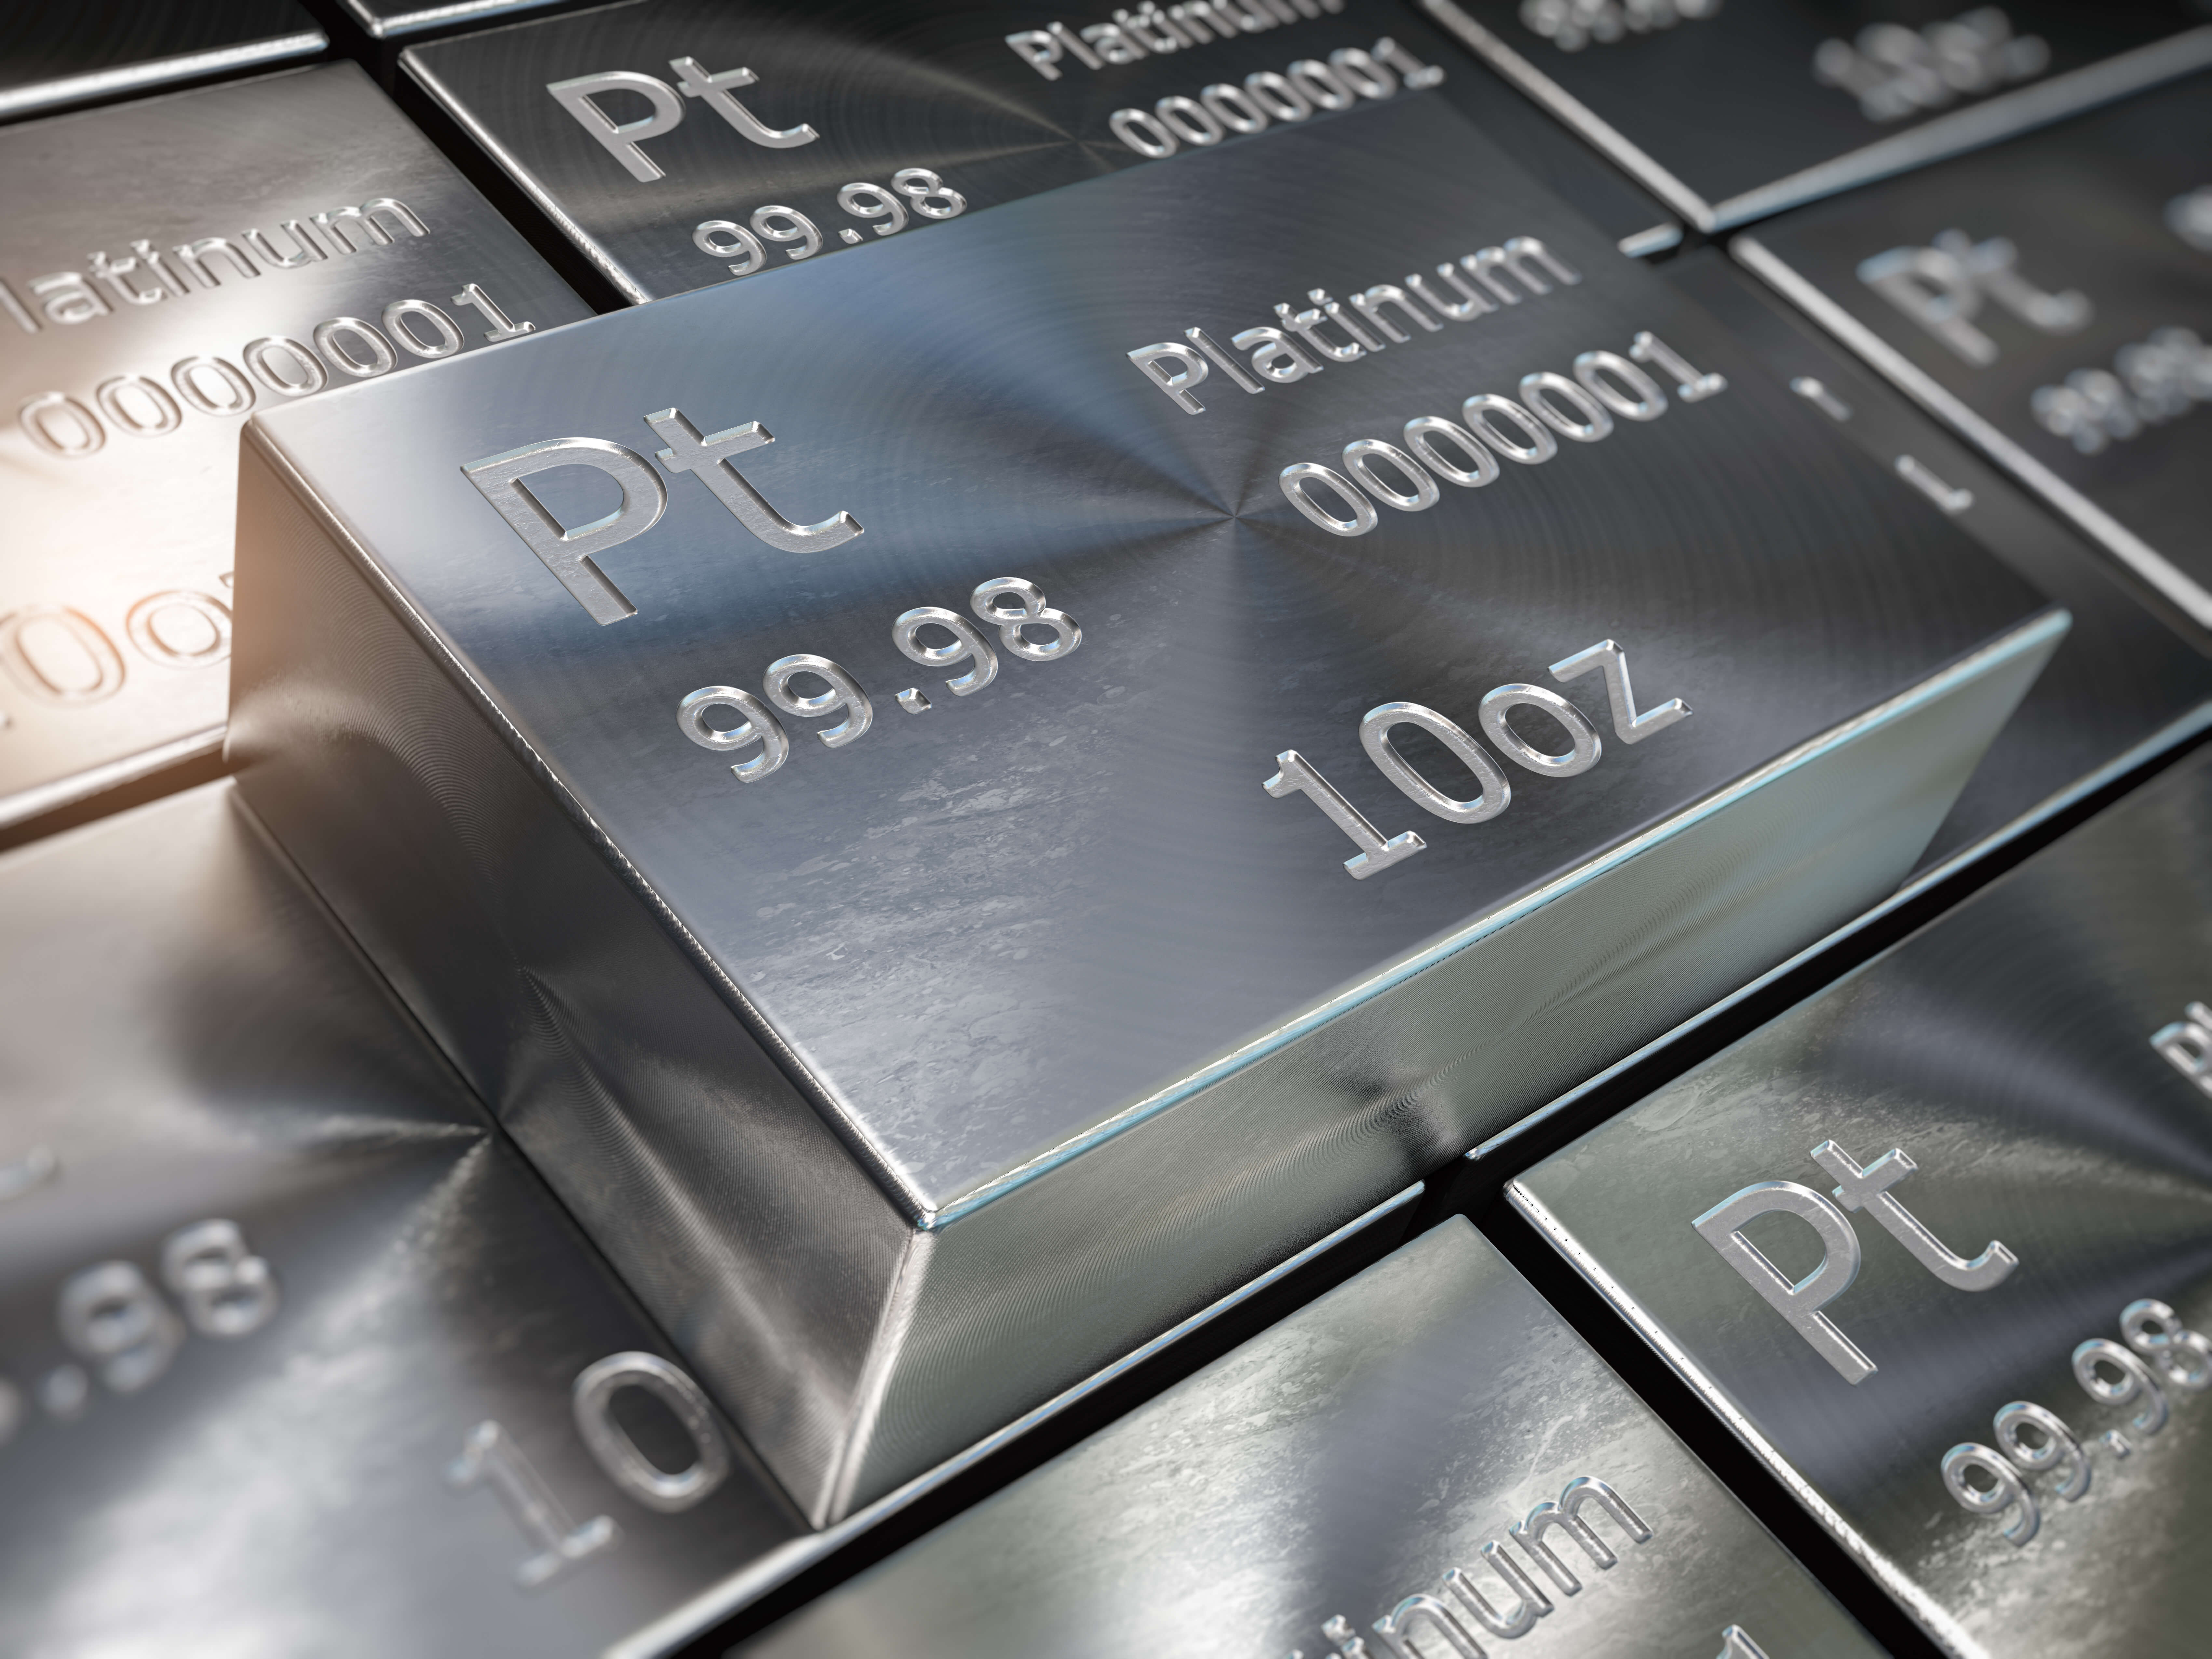 Platinum FAQ: Everything You Need to Know About This Rare Metal